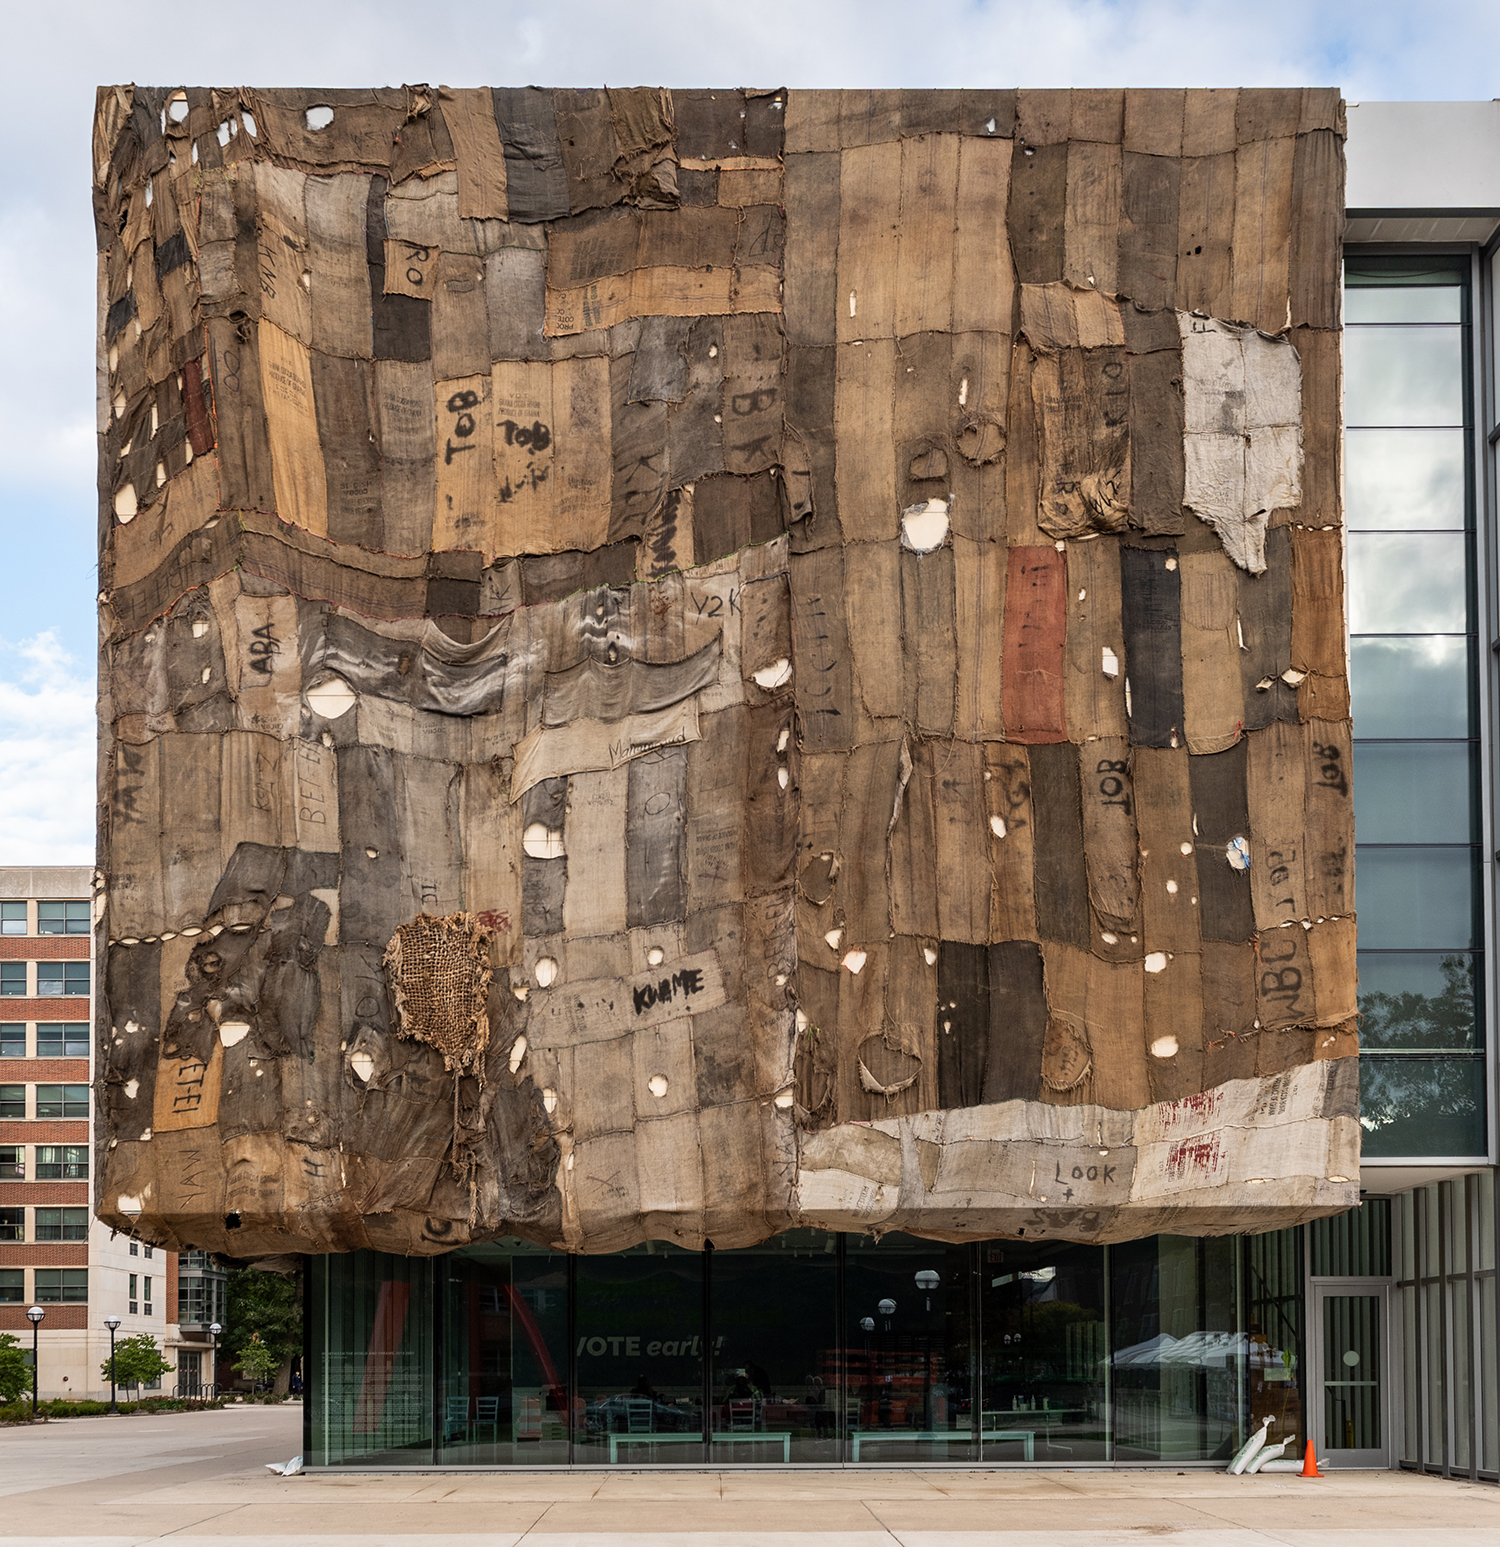 The front of UMMA's building, covered with a patchwork quilt made of various brown burlap sacks